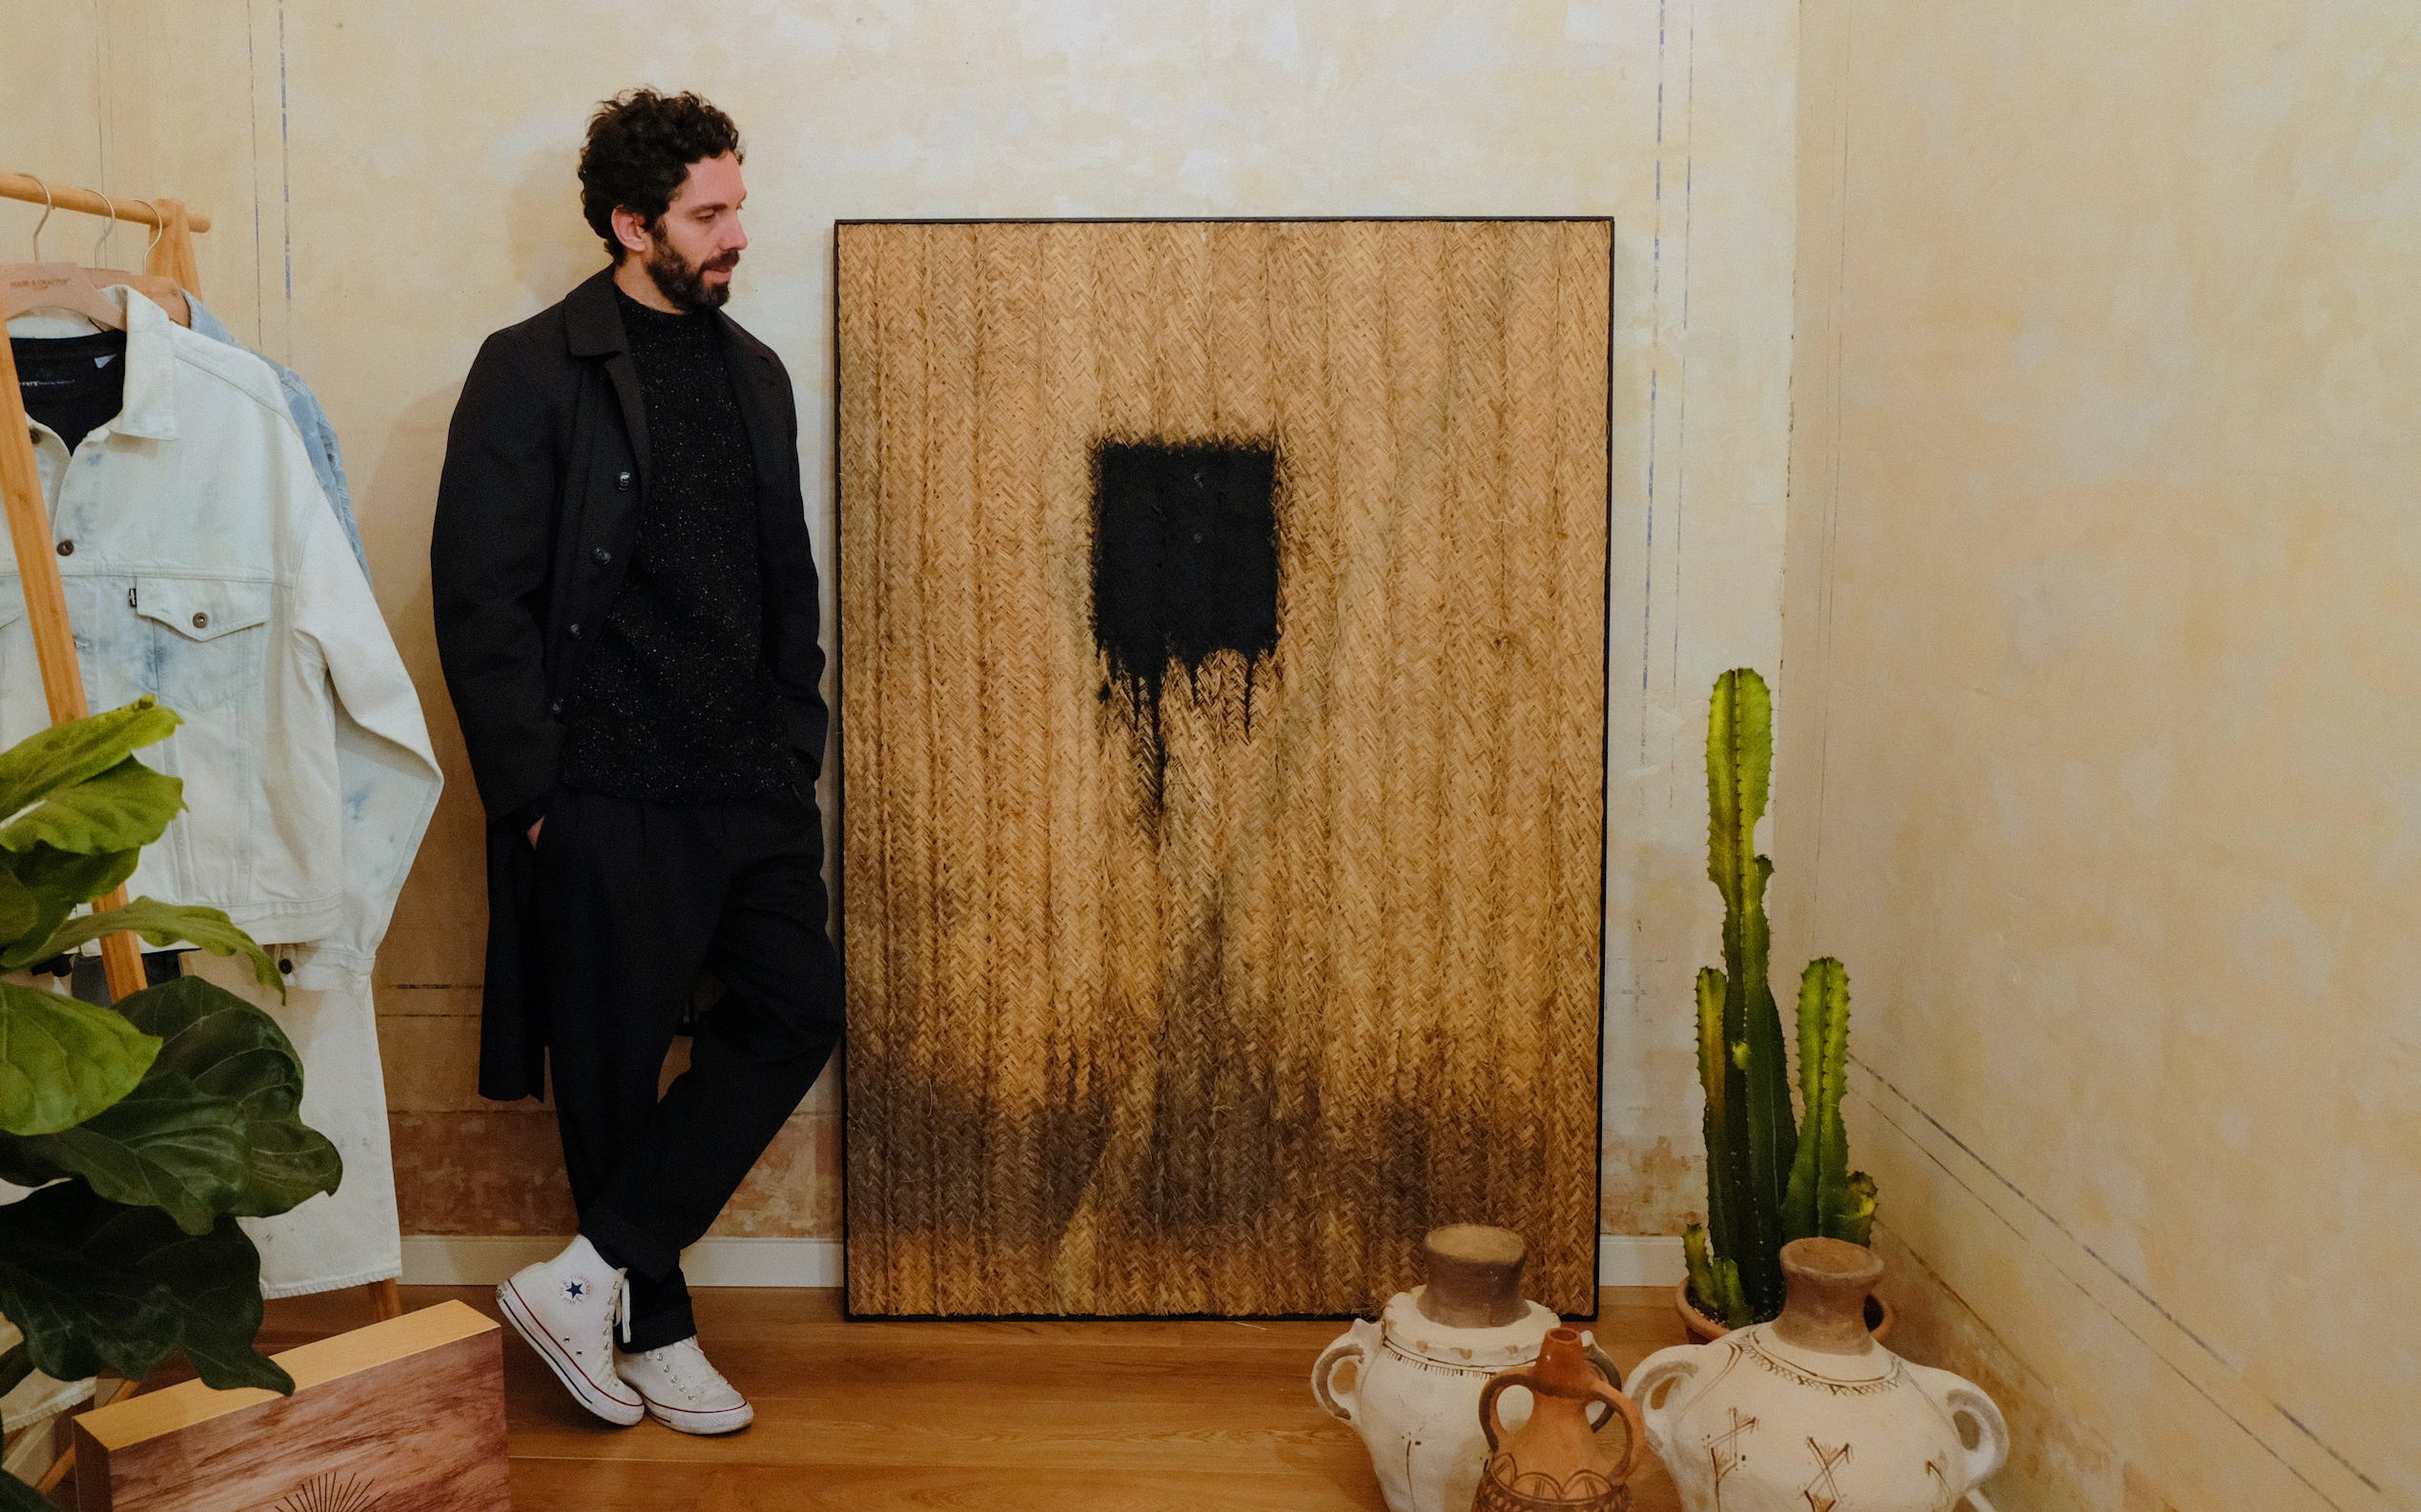 Levi's® Made & Crafted® colabora con el artesano Javier Sánchez Medina en The Tiny Art Fair